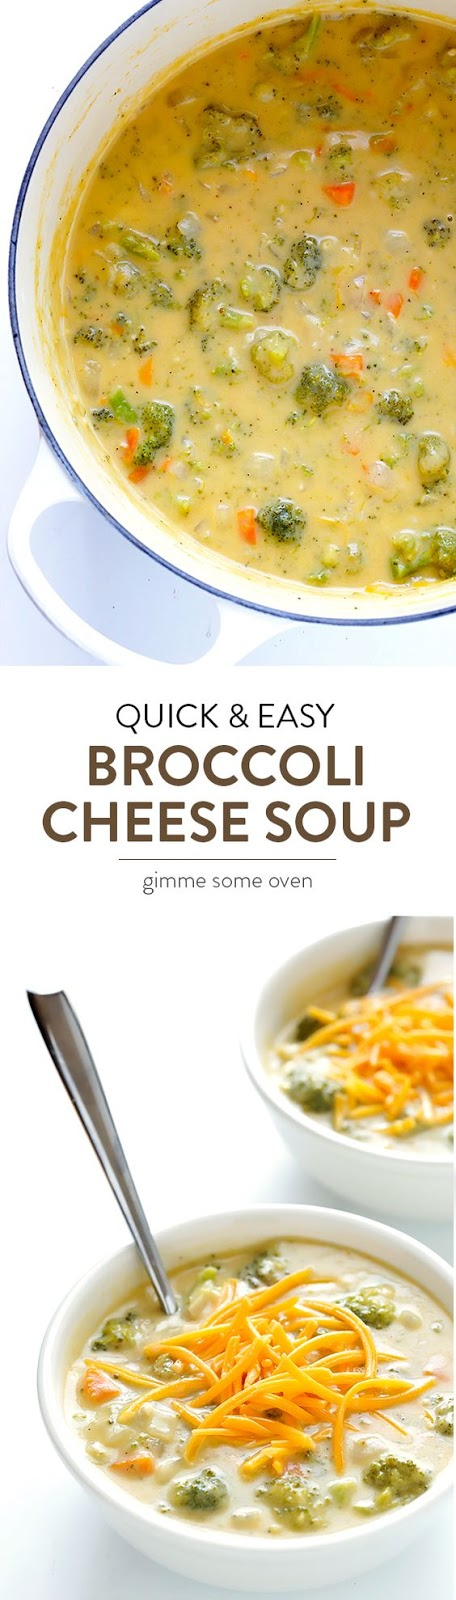 BROCCOLI CHEESE SOUP #BROCCOLI #CHEESE #SOUP #DESSERTS #HEALTHYFOOD #EASY_RECIPES #DINNER #LAUCH #DELICIOUS #EASY #HOLIDAYS #RECIPE #SPECIAL_DIET #WORLD_CUISINE #CAKE #GRILL #APPETIZERS #HEALTHY_RECIPES #DRINKS #COOKING_METHOD #ITALIAN_RECIPES #MEAT #VEGAN_RECIPES #COOKIES #PASTA #FRUIT #SALAD #SOUP_APPETIZERS #NON_ALCOHOLIC_DRINKS #MEAL_PLANNING #VEGETABLES #SOUP #PASTRY #CHOCOLATE #DAIRY #ALCOHOLIC_DRINKS #BULGUR_SALAD #BAKING #SNACKS #BEEF_RECIPES #MEAT_APPETIZERS #MEXICAN_RECIPES #BREAD #ASIAN_RECIPES #SEAFOOD_APPETIZERS #MUFFINS #BREAKFAST_AND_BRUNCH #CONDIMENTS #CUPCAKES #CHEESE #CHICKEN_RECIPES #PIE #COFFEE #NO_BAKE_DESSERTS #HEALTHY_SNACKS #SEAFOOD #GRAIN #LUNCHES_DINNERS #MEXICAN #QUICK_BREAD #LIQUOR